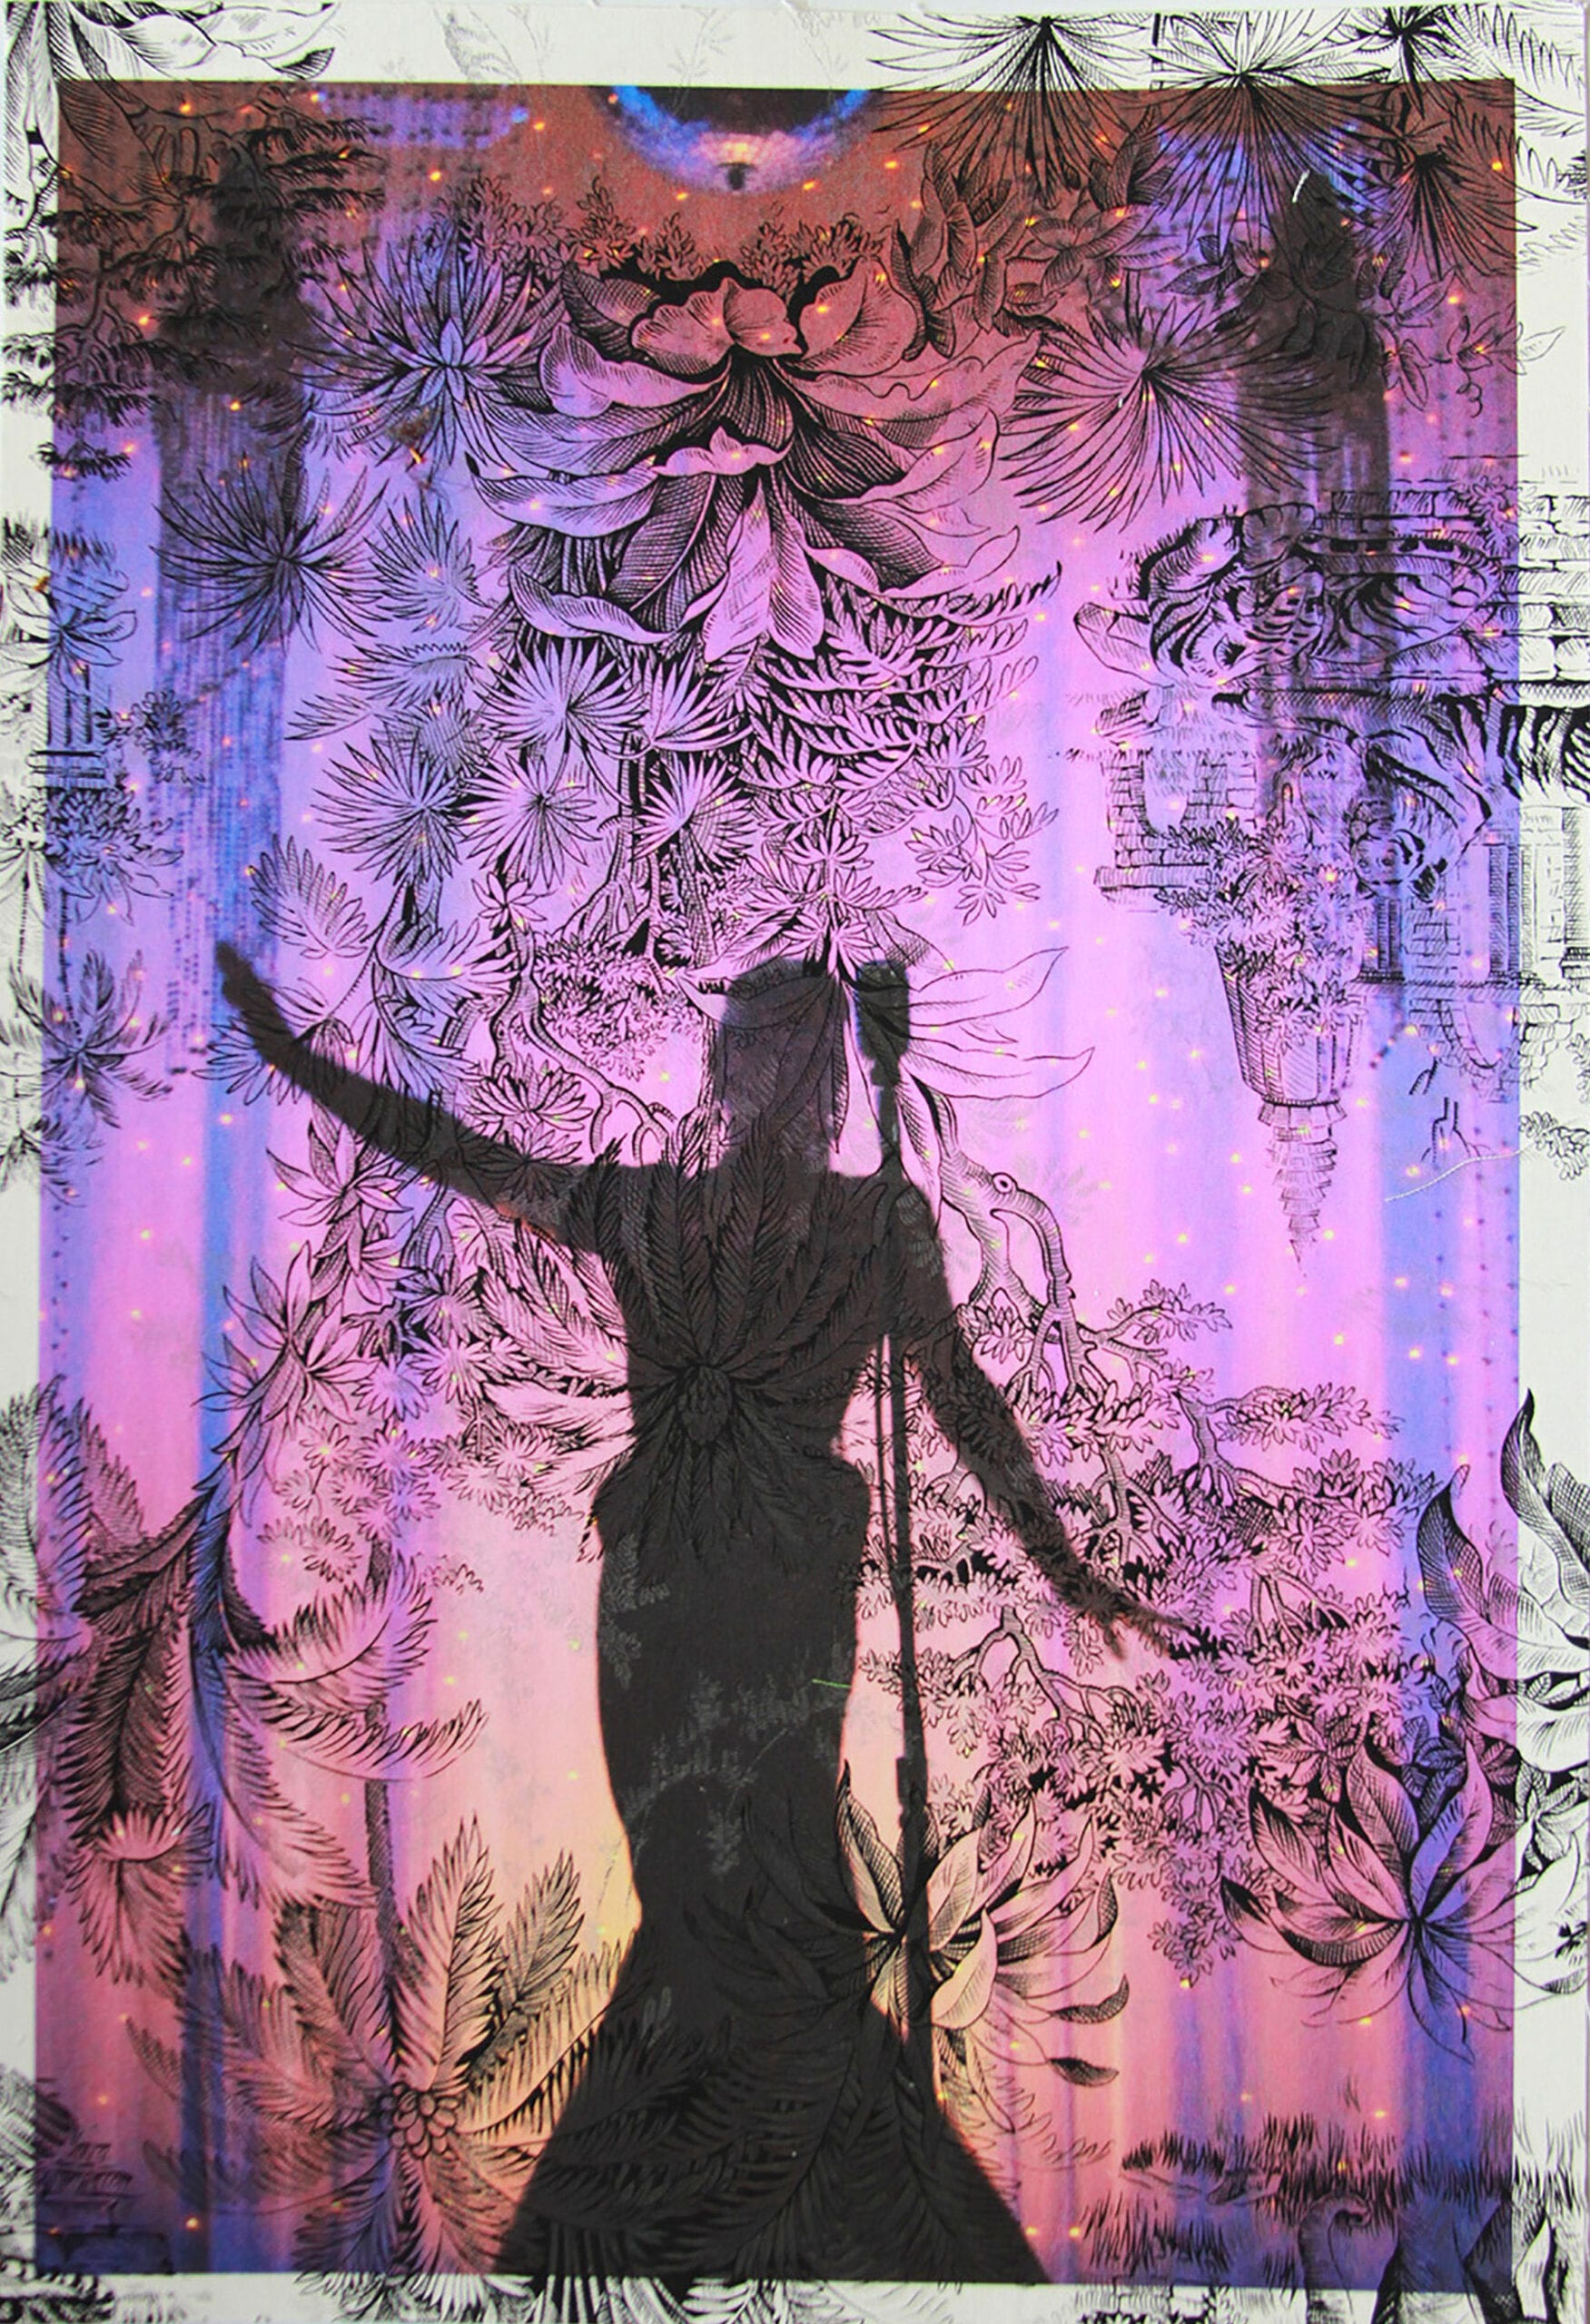 "Tim Hailand, Joey Arias in Mugler gown New York ( on black tiger toile), digital pigment print on patterned toile de Jouy fabric, 19"" x 13"", unique print, 2012"